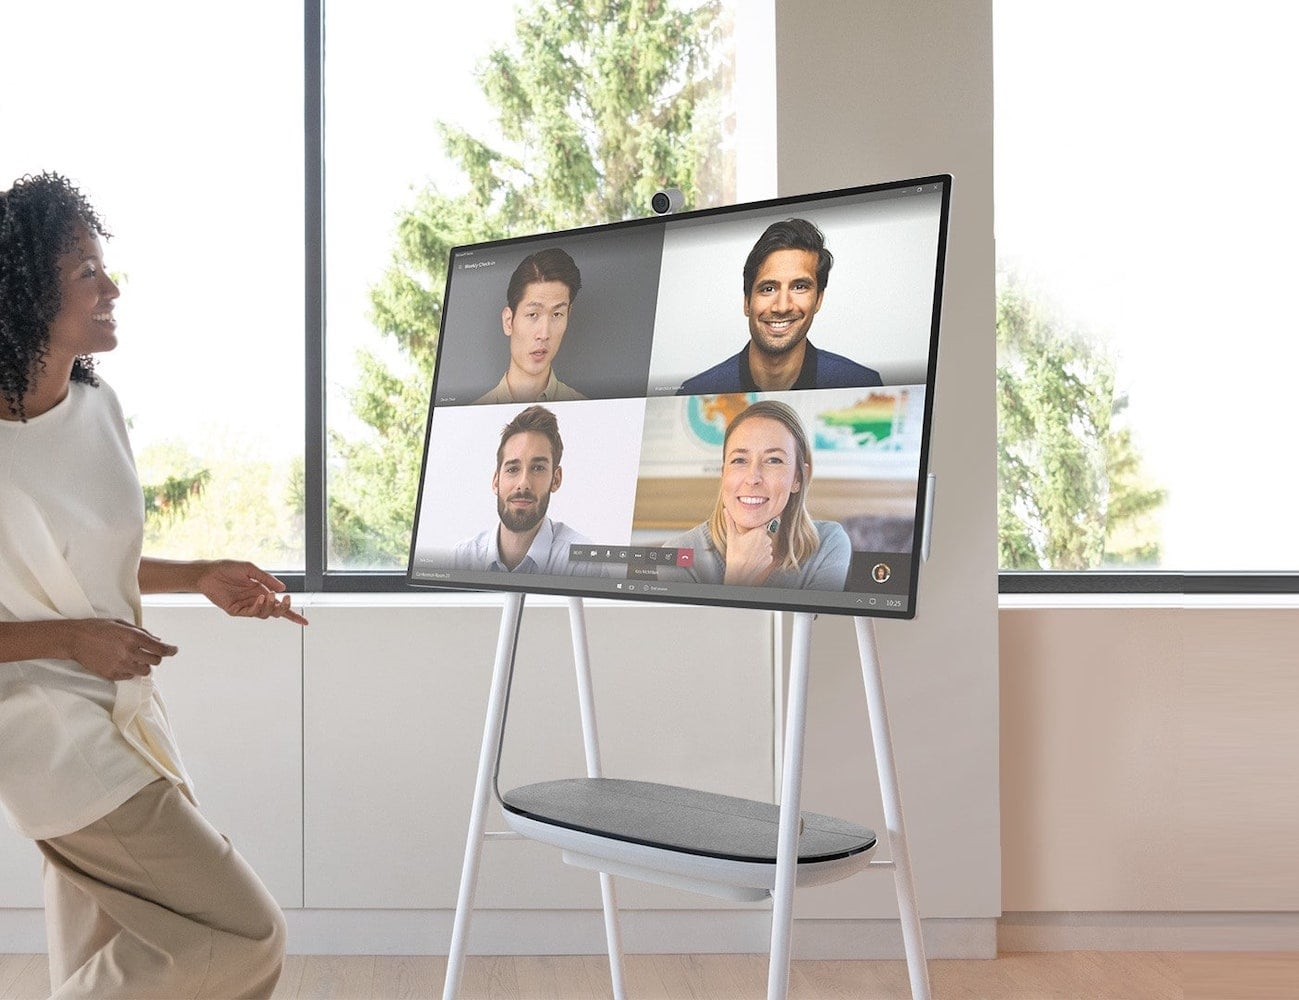 Microsoft Surface Hub 2S Interactive Whiteboard means better collaboration